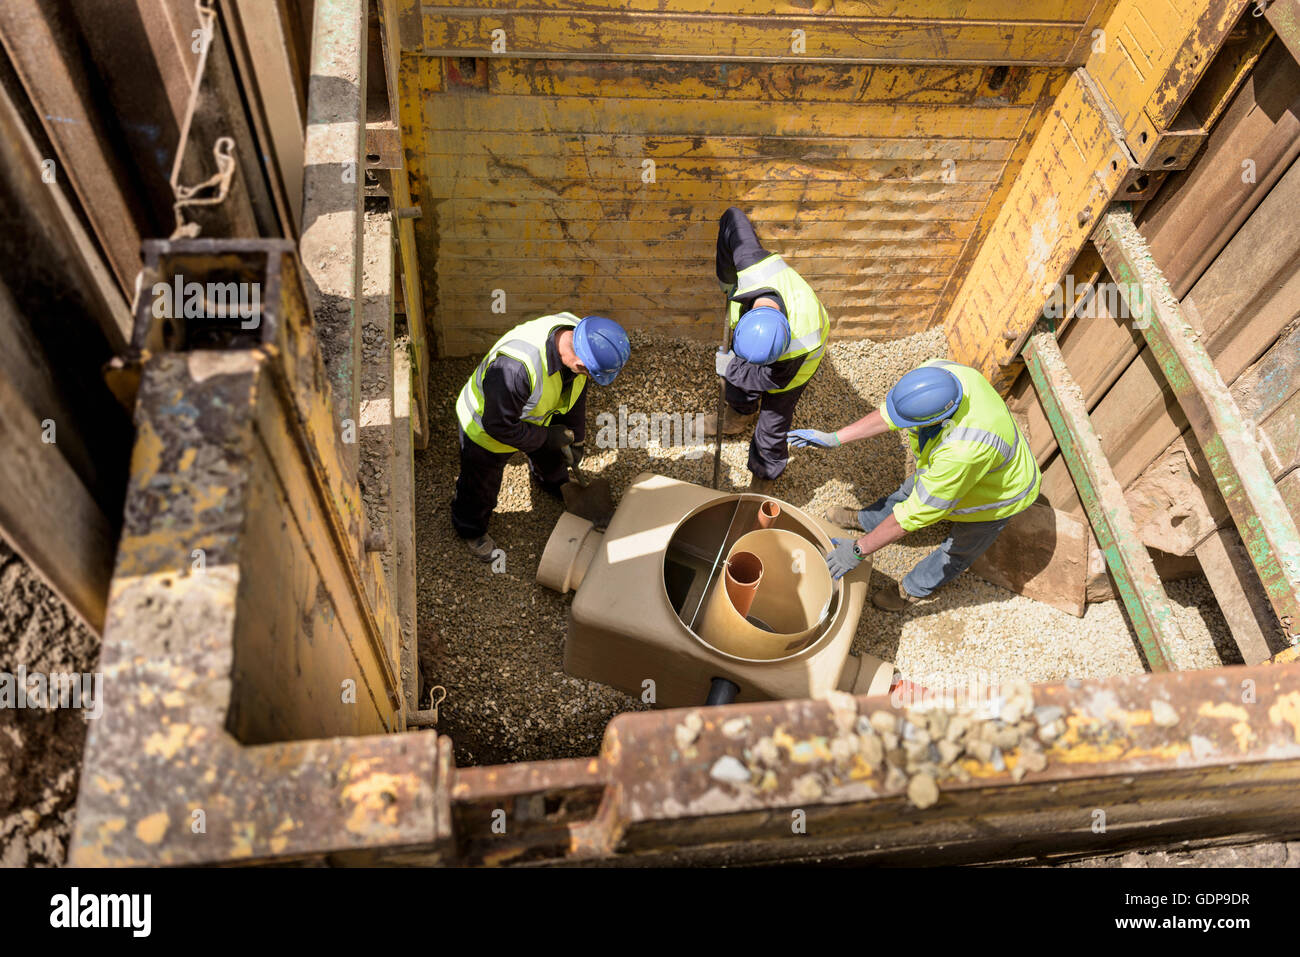 Apprentice builders training with drainage in hole on building site - Stock Image